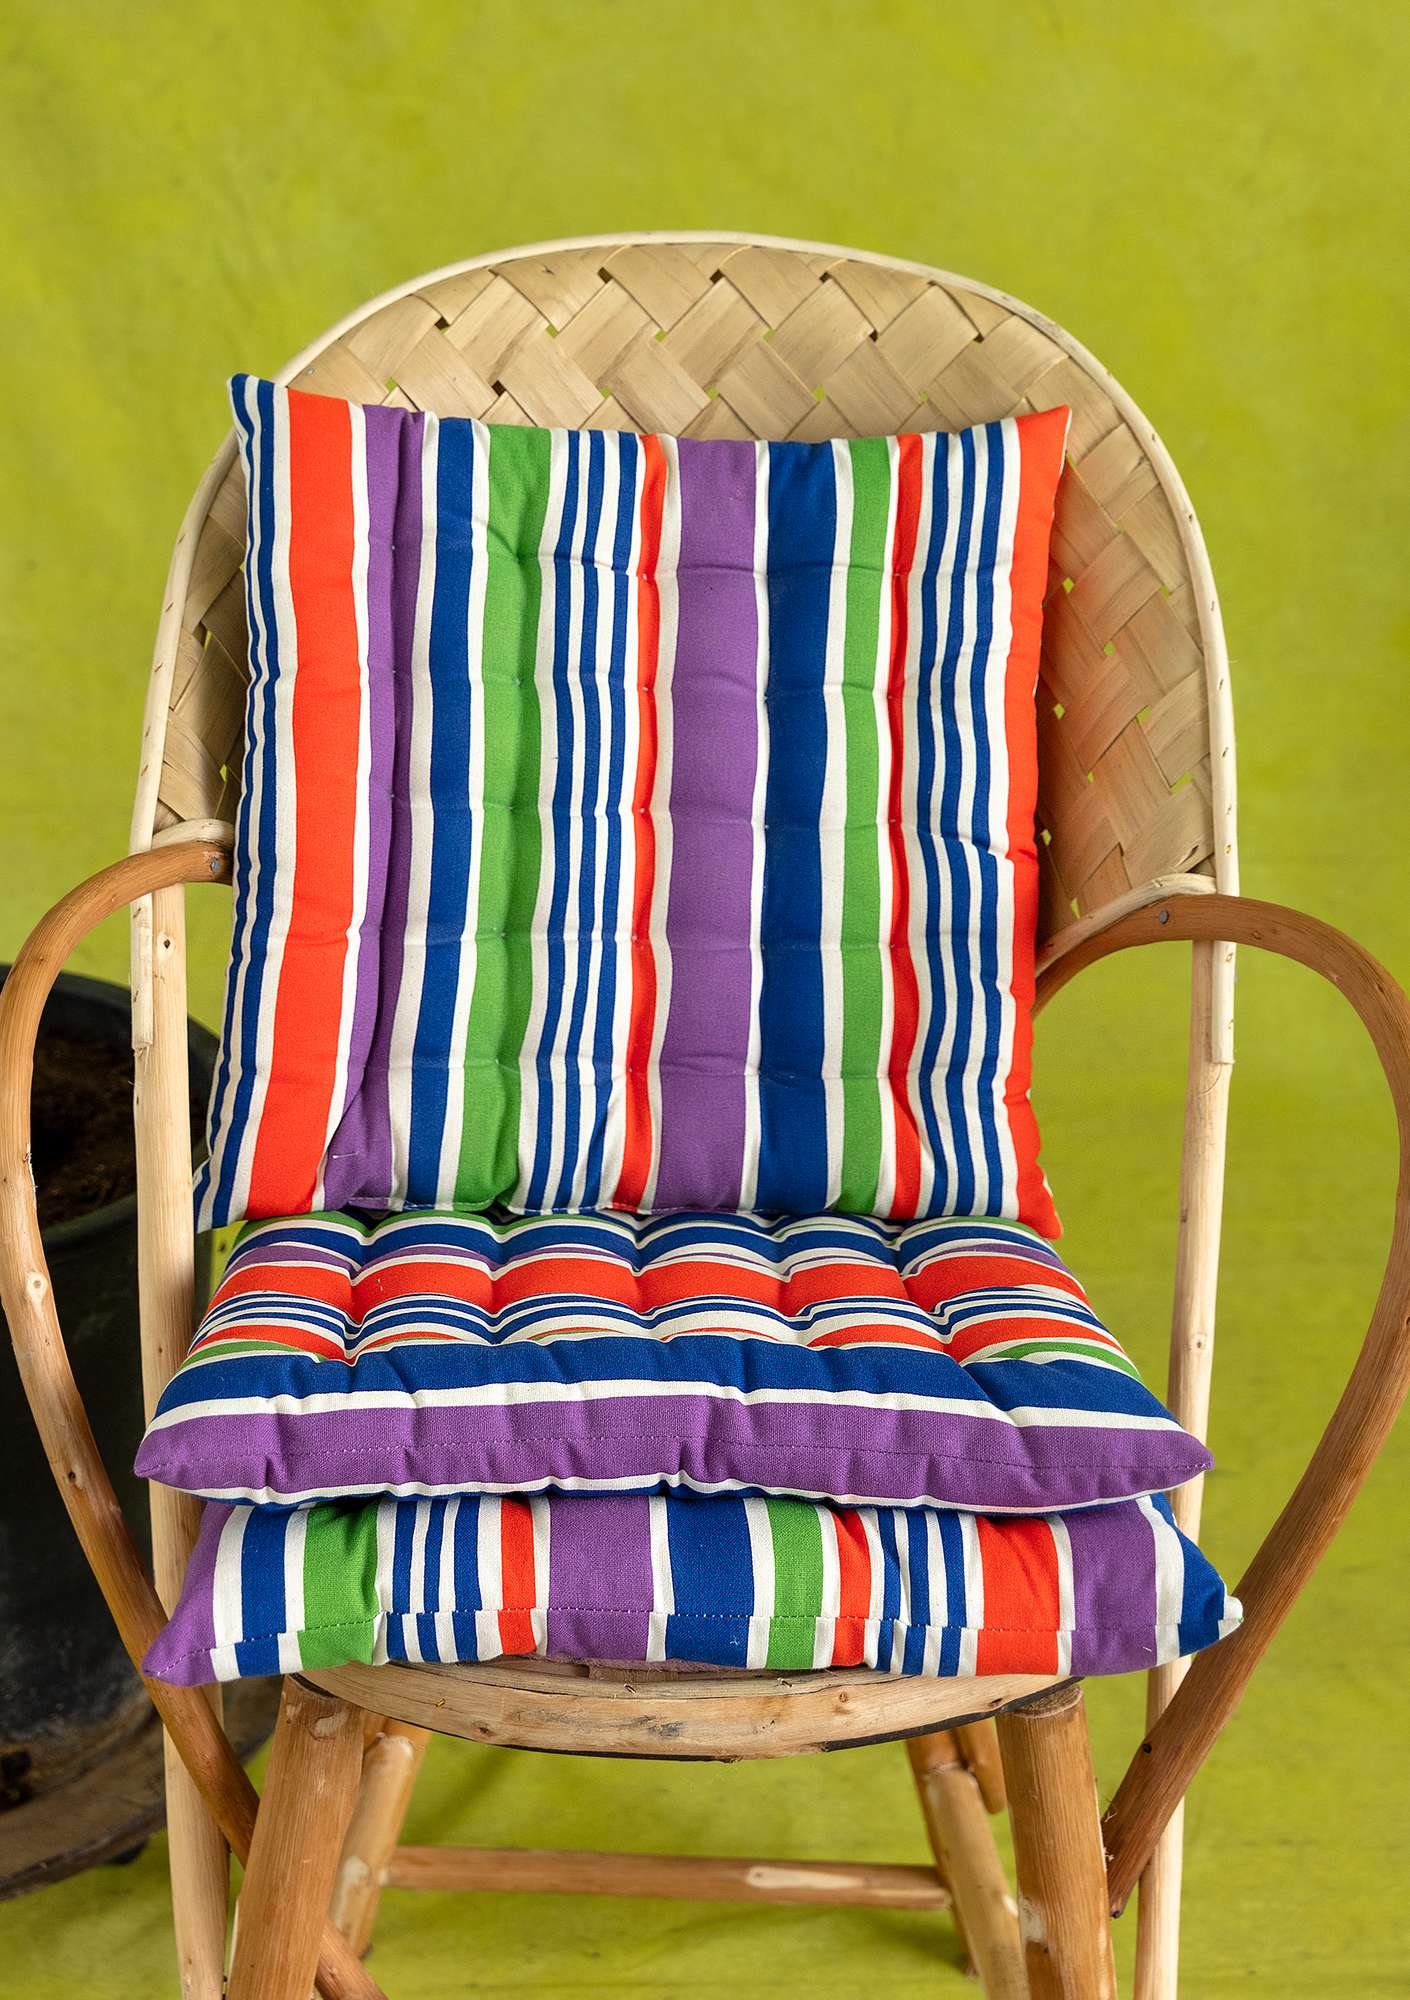 Strimma seat cushion multicoloured